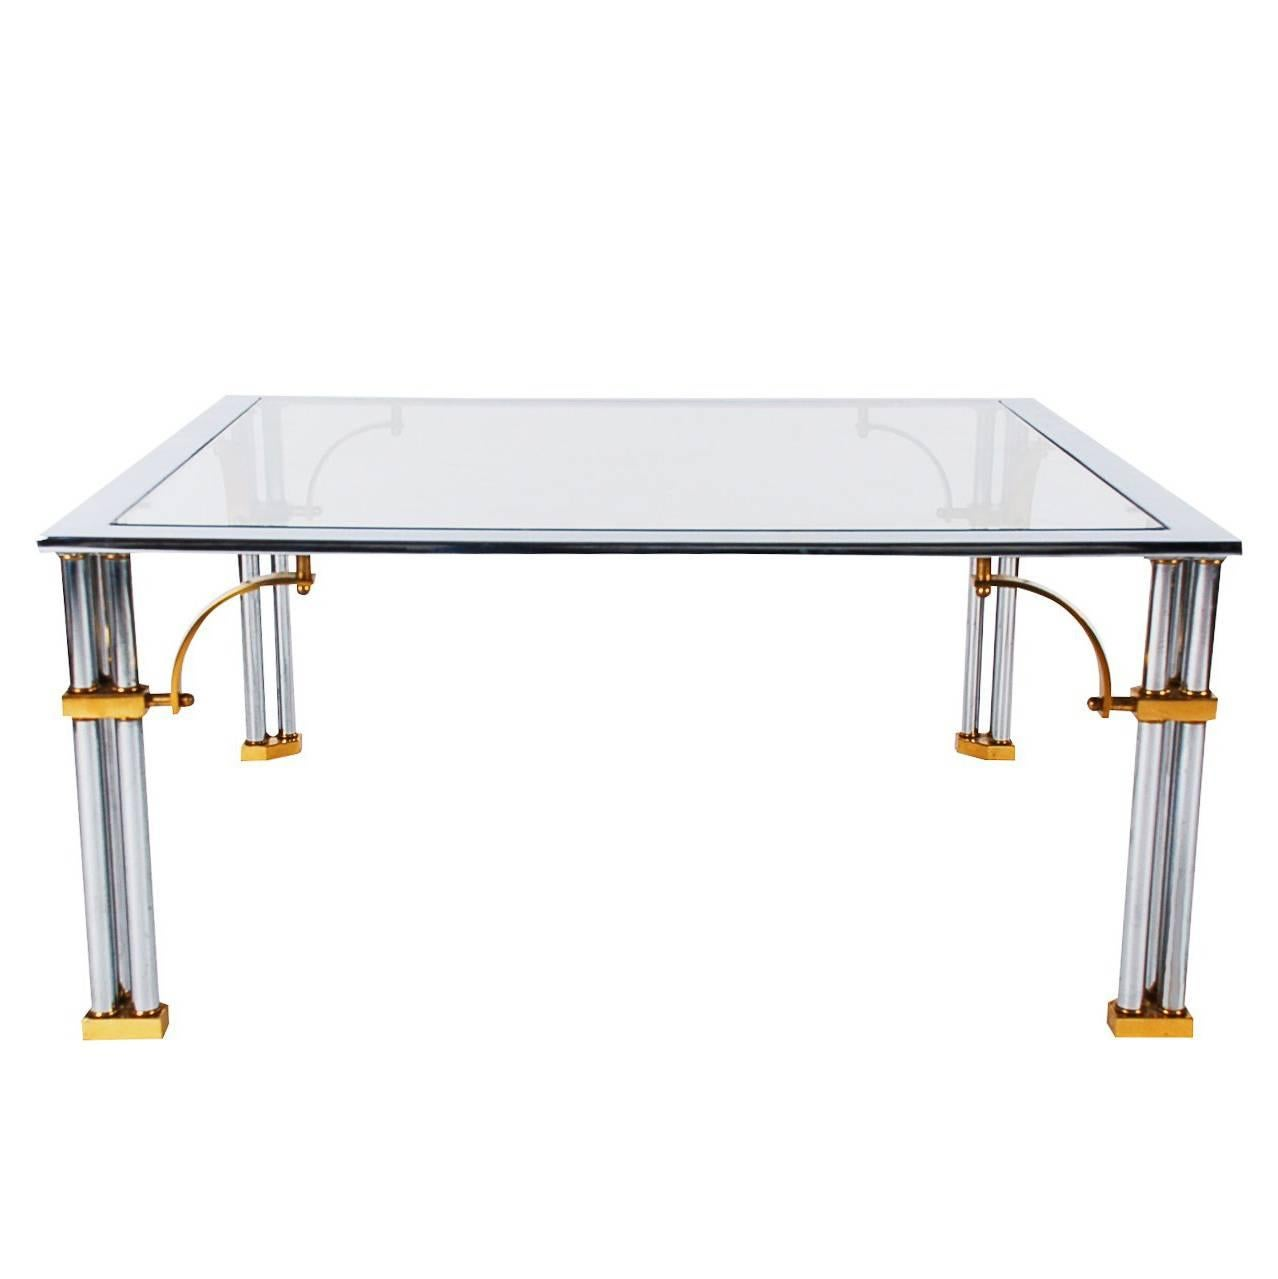 Hollywood Regency Brass, Chrome and Glass Square Cocktail Table, Maison Jansen